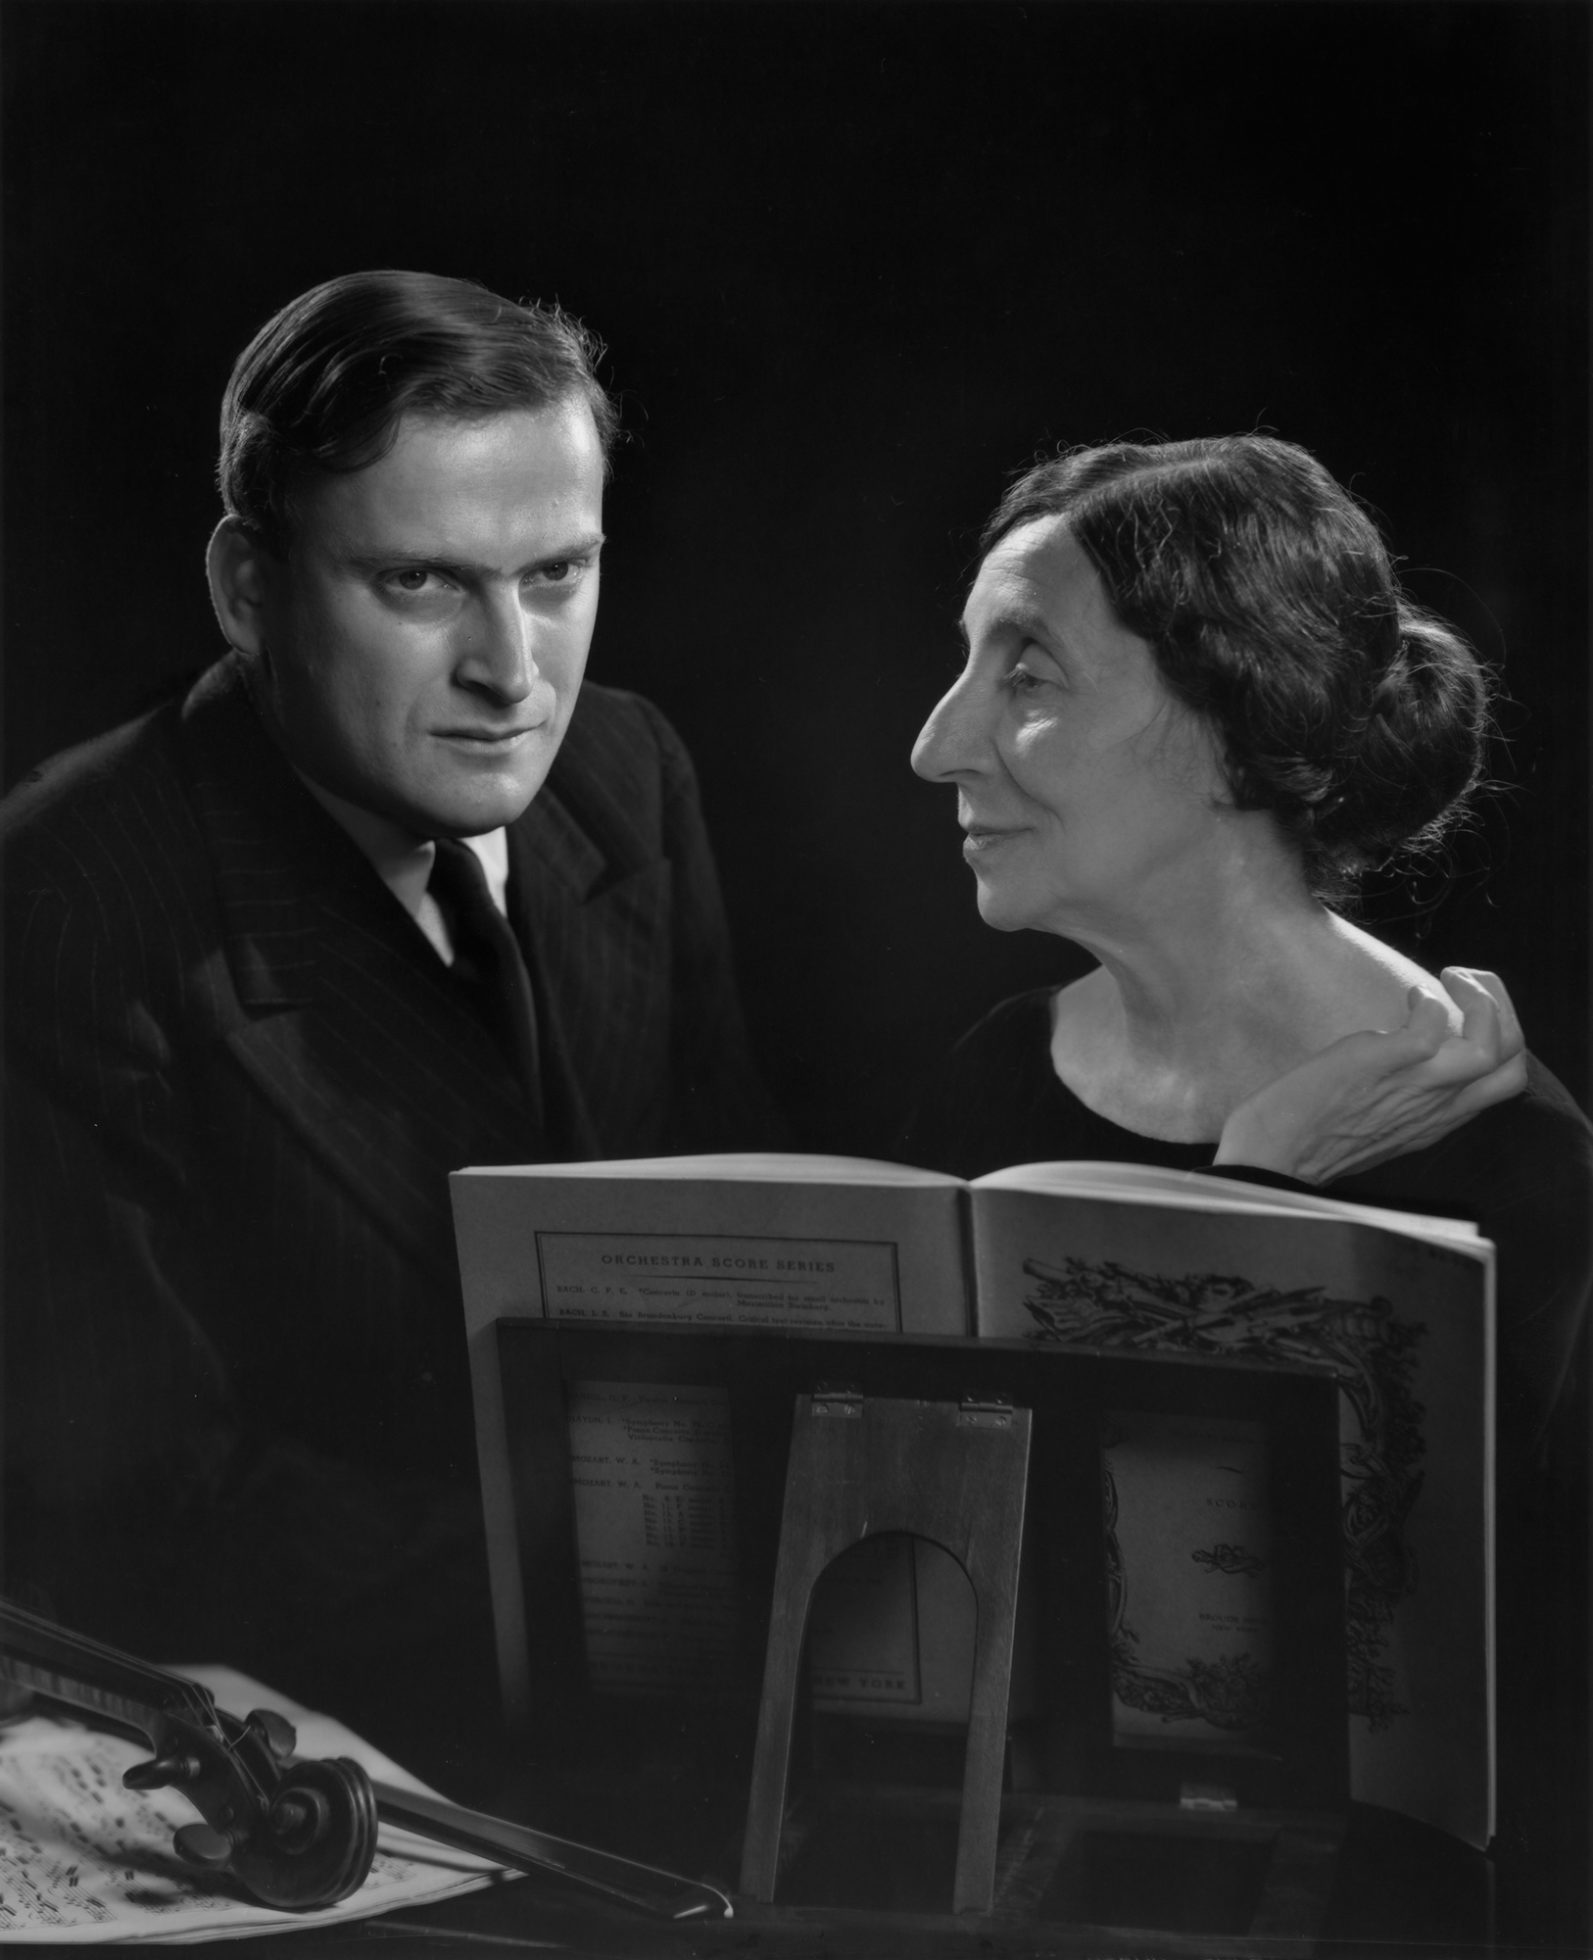 Yehudi Menuhin and Wanda Landowska